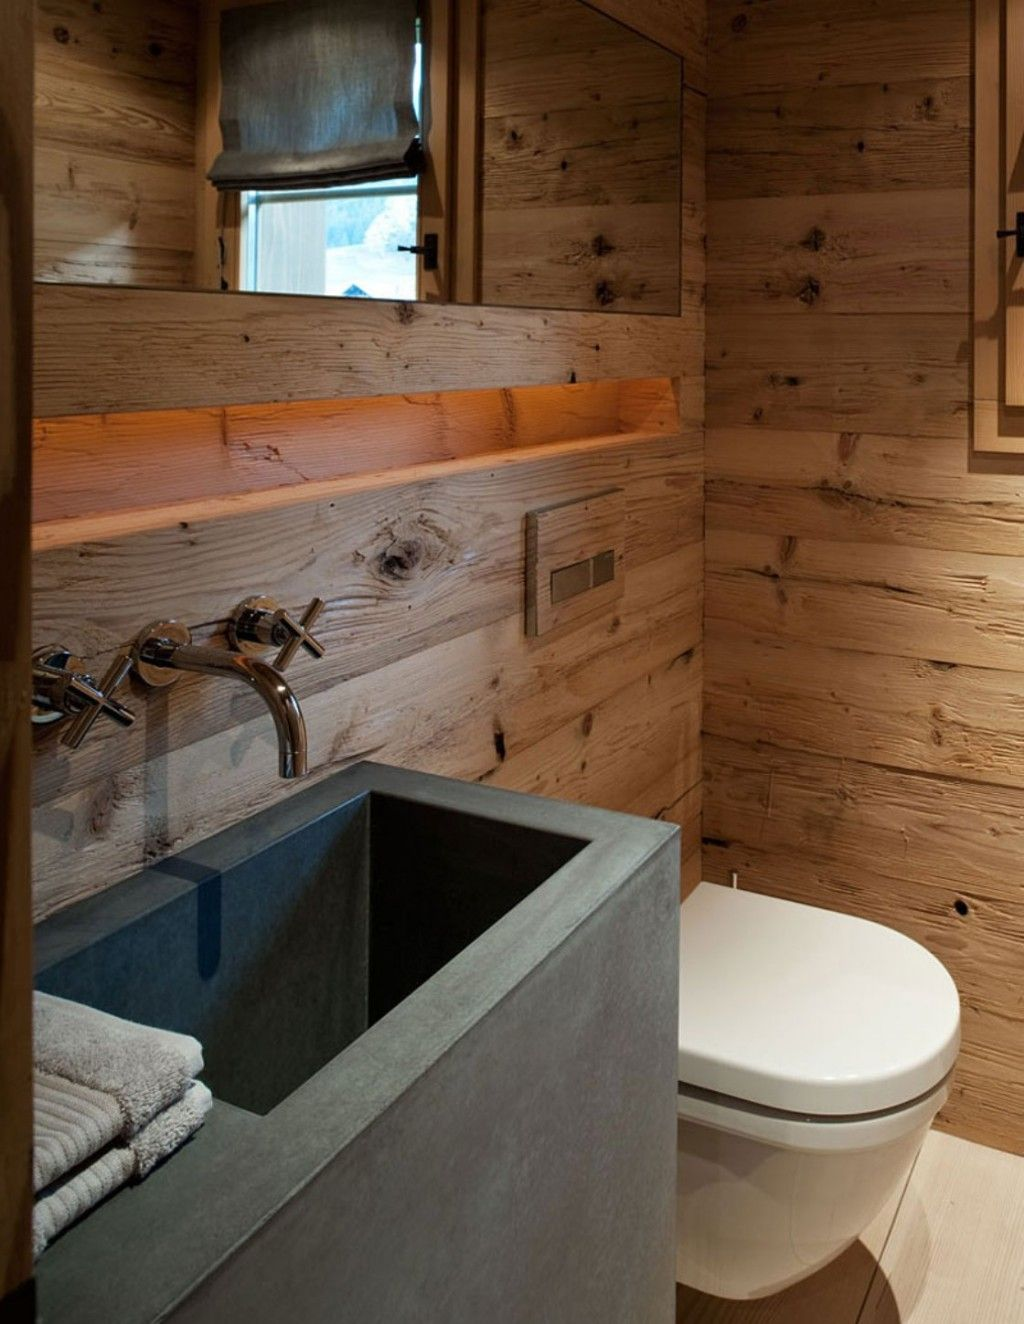 Wooden Traditional Bathroom Mix With Modern Appliances Of White Wall ...